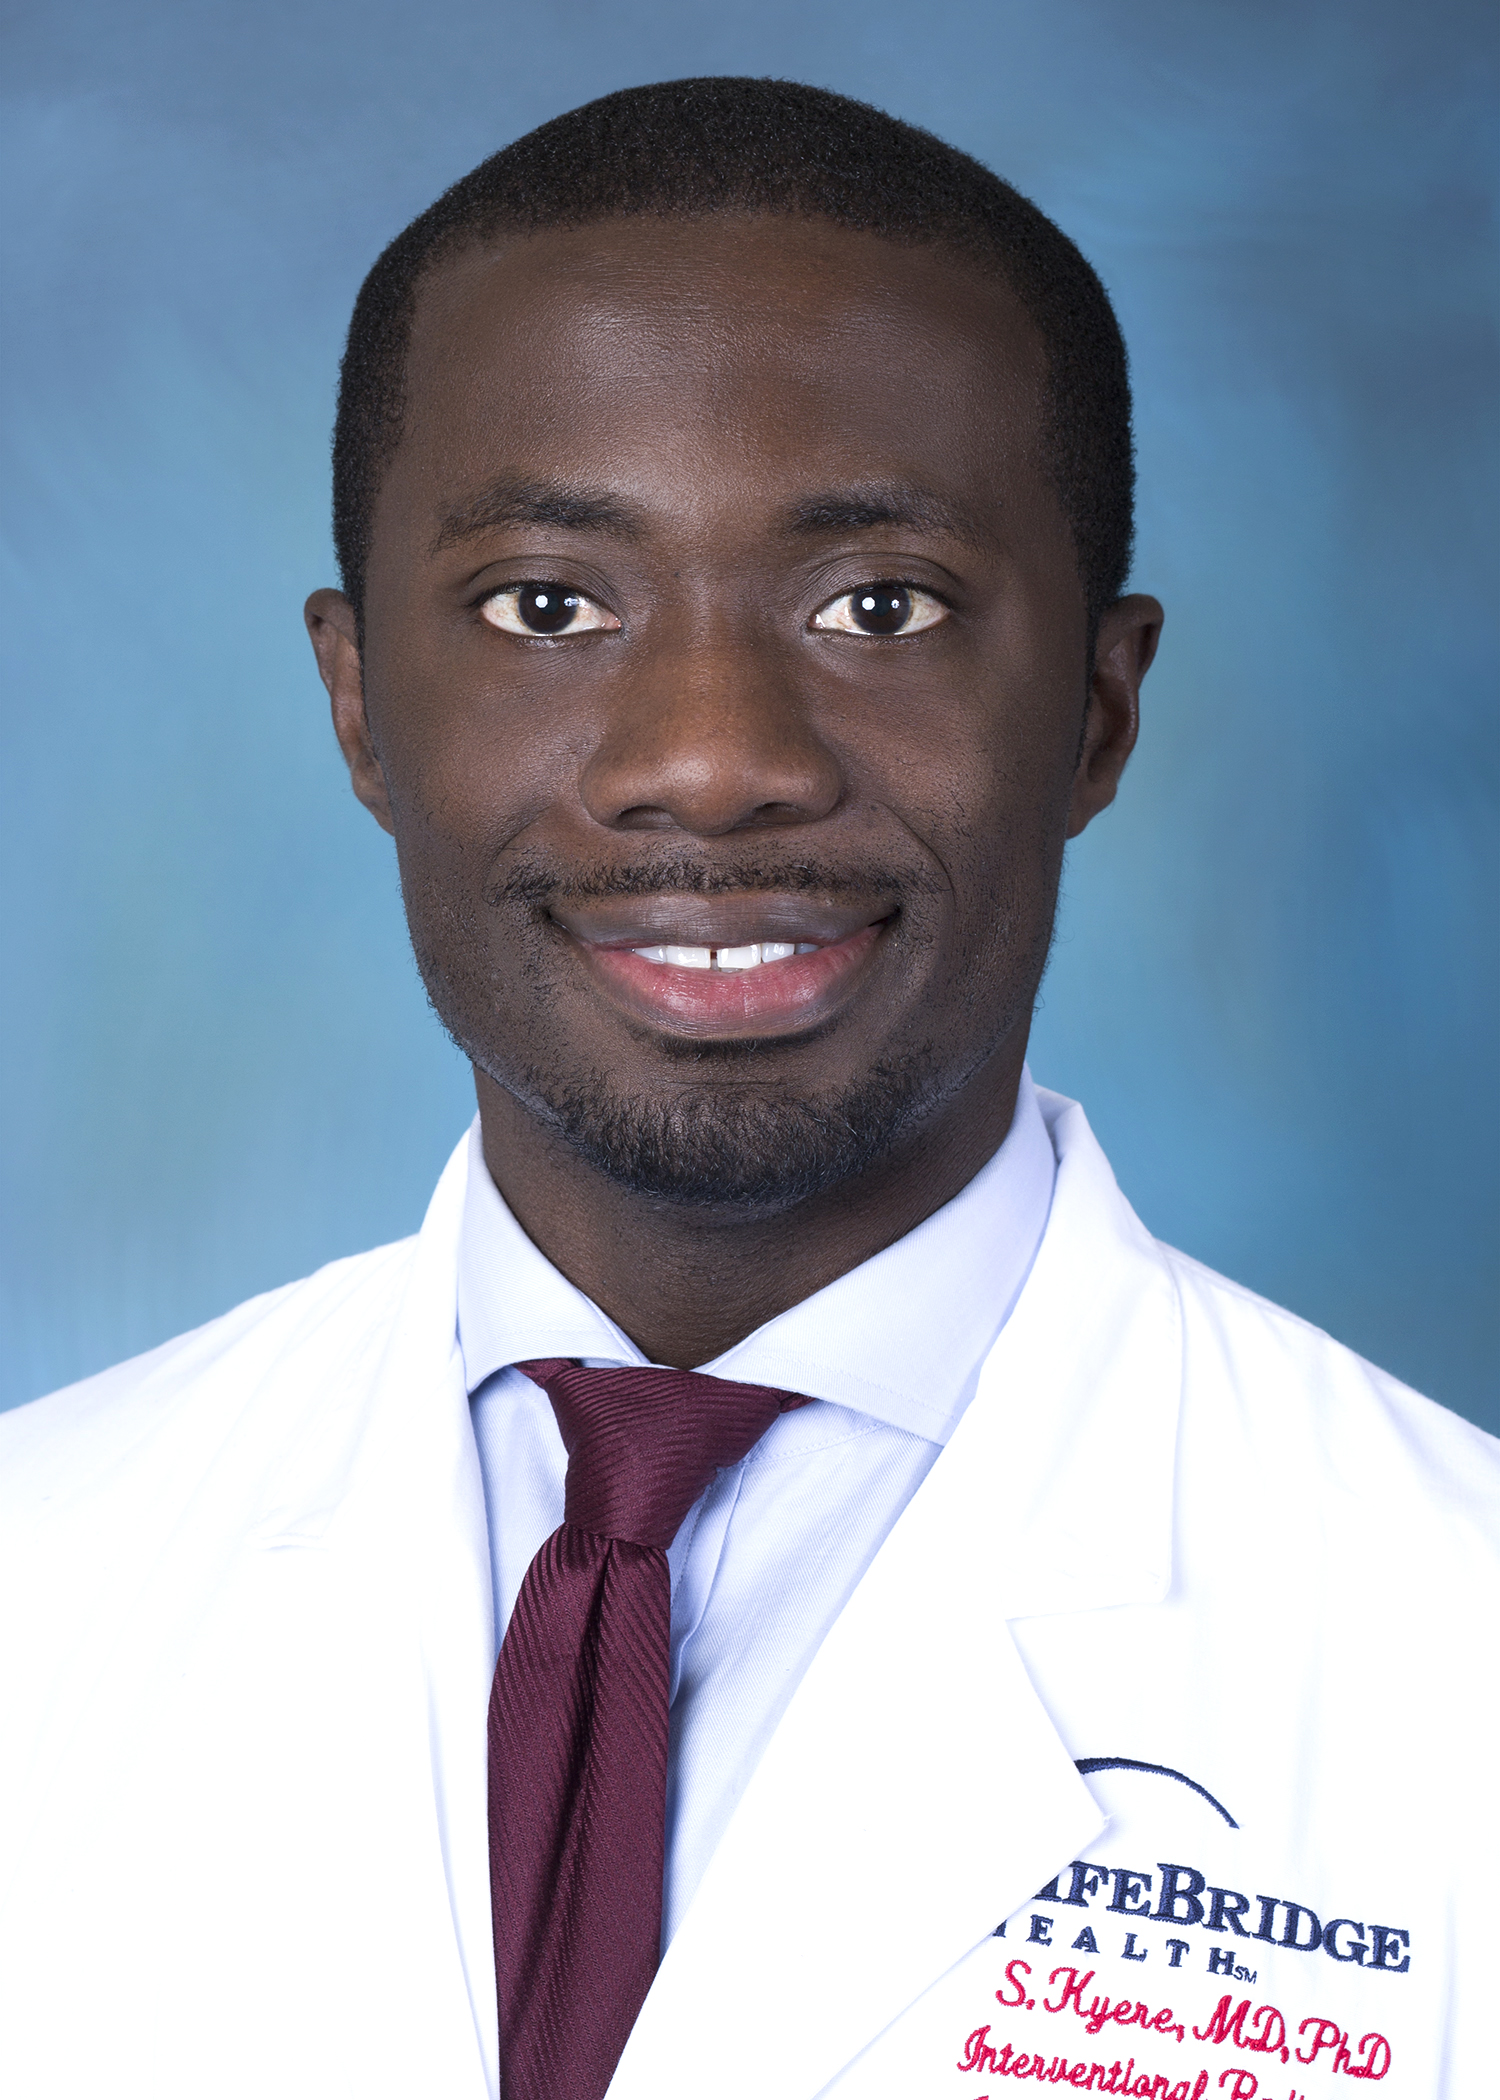 Sampson K. Kyere, M.D., Ph.D.